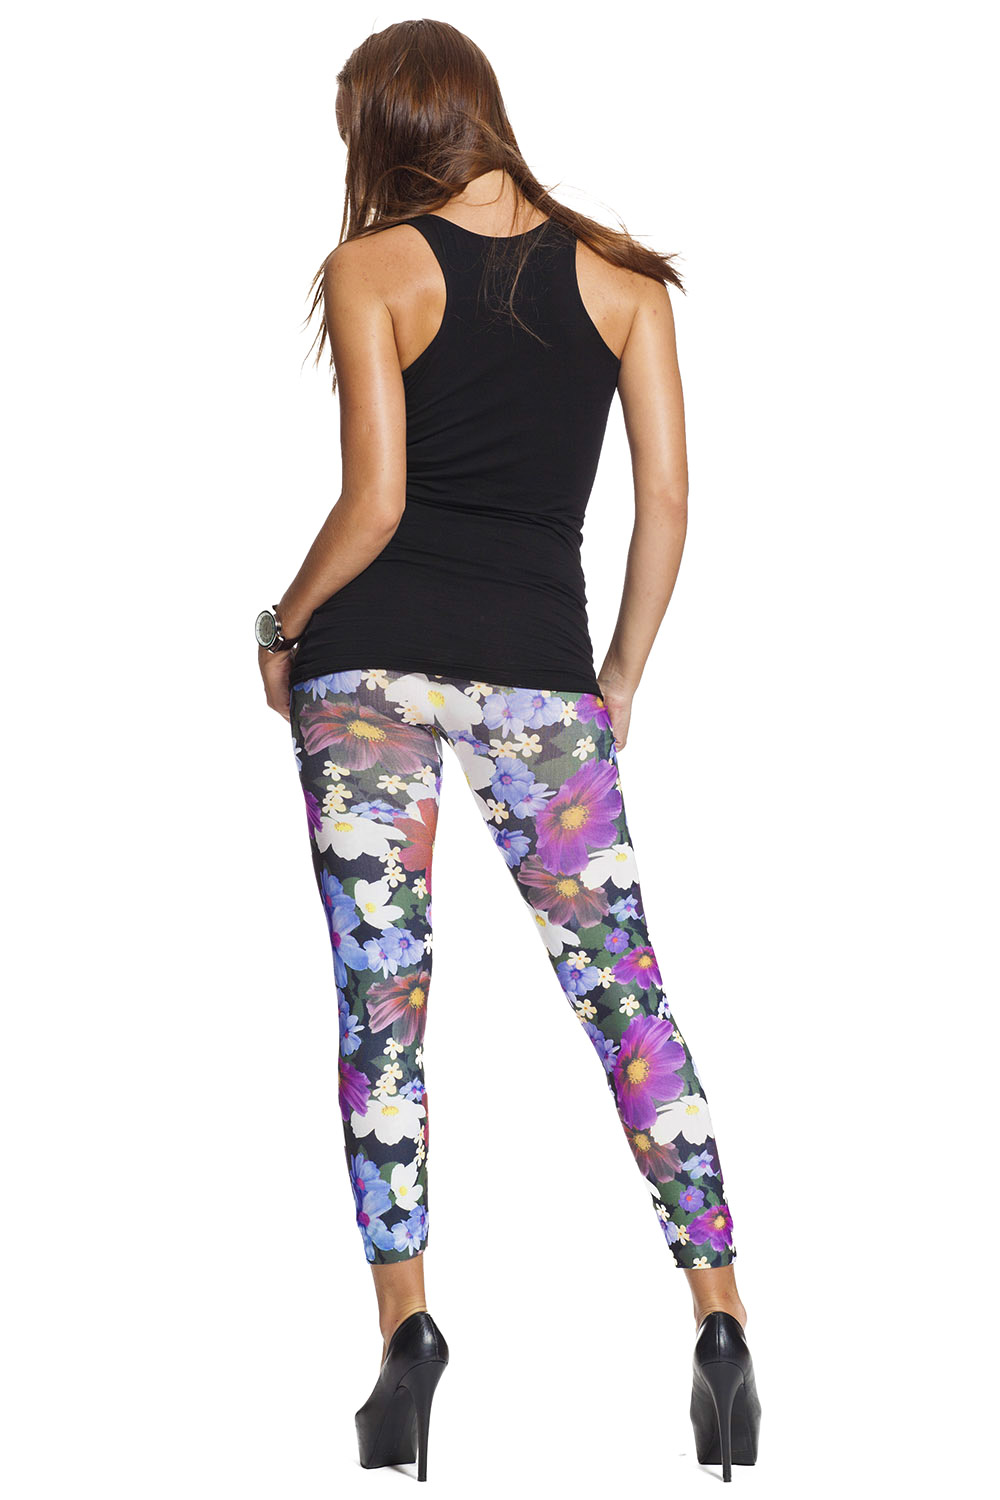 These cropped stretch leggings with slit hems provide a sporty look year round. Pair them with a cotton tunic and sneakers for an on-the-go look, or wear them around the house for casual comfort.